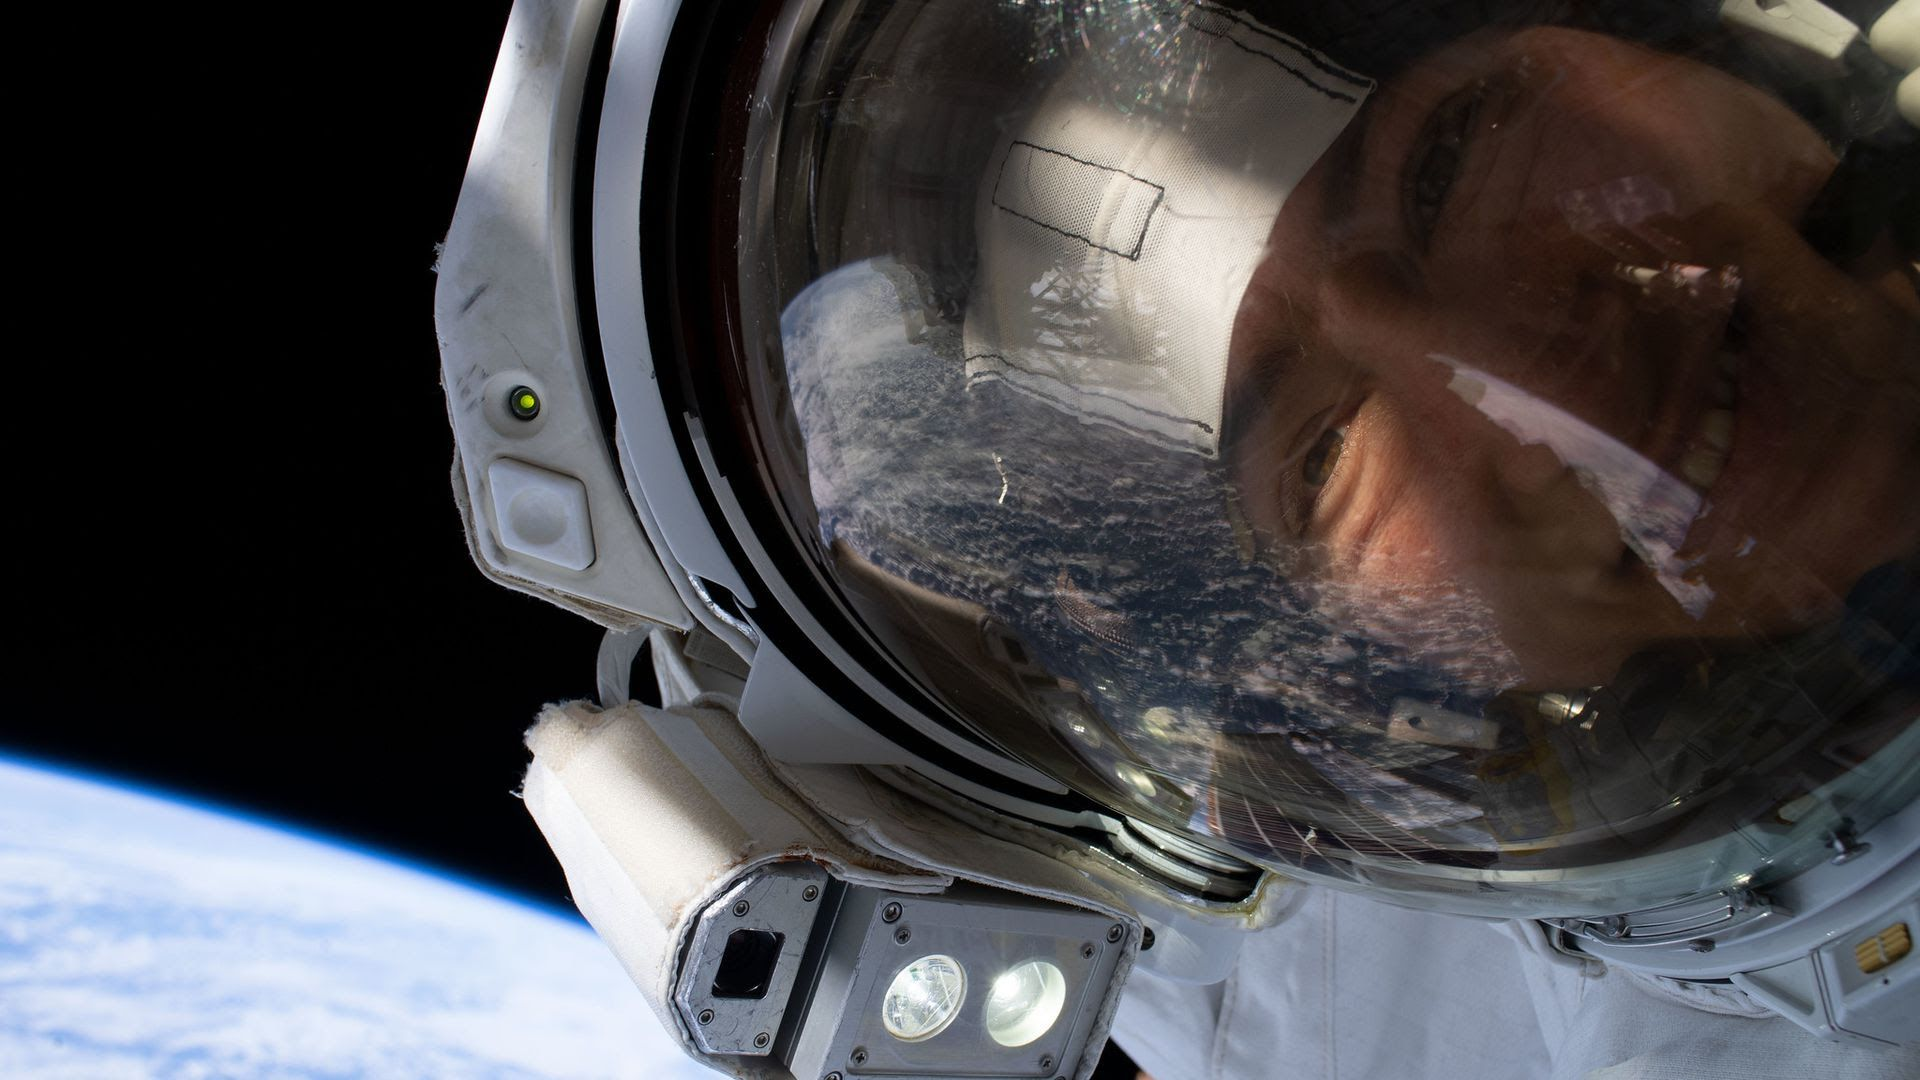 A female astronaut takes a selfie in outer space.